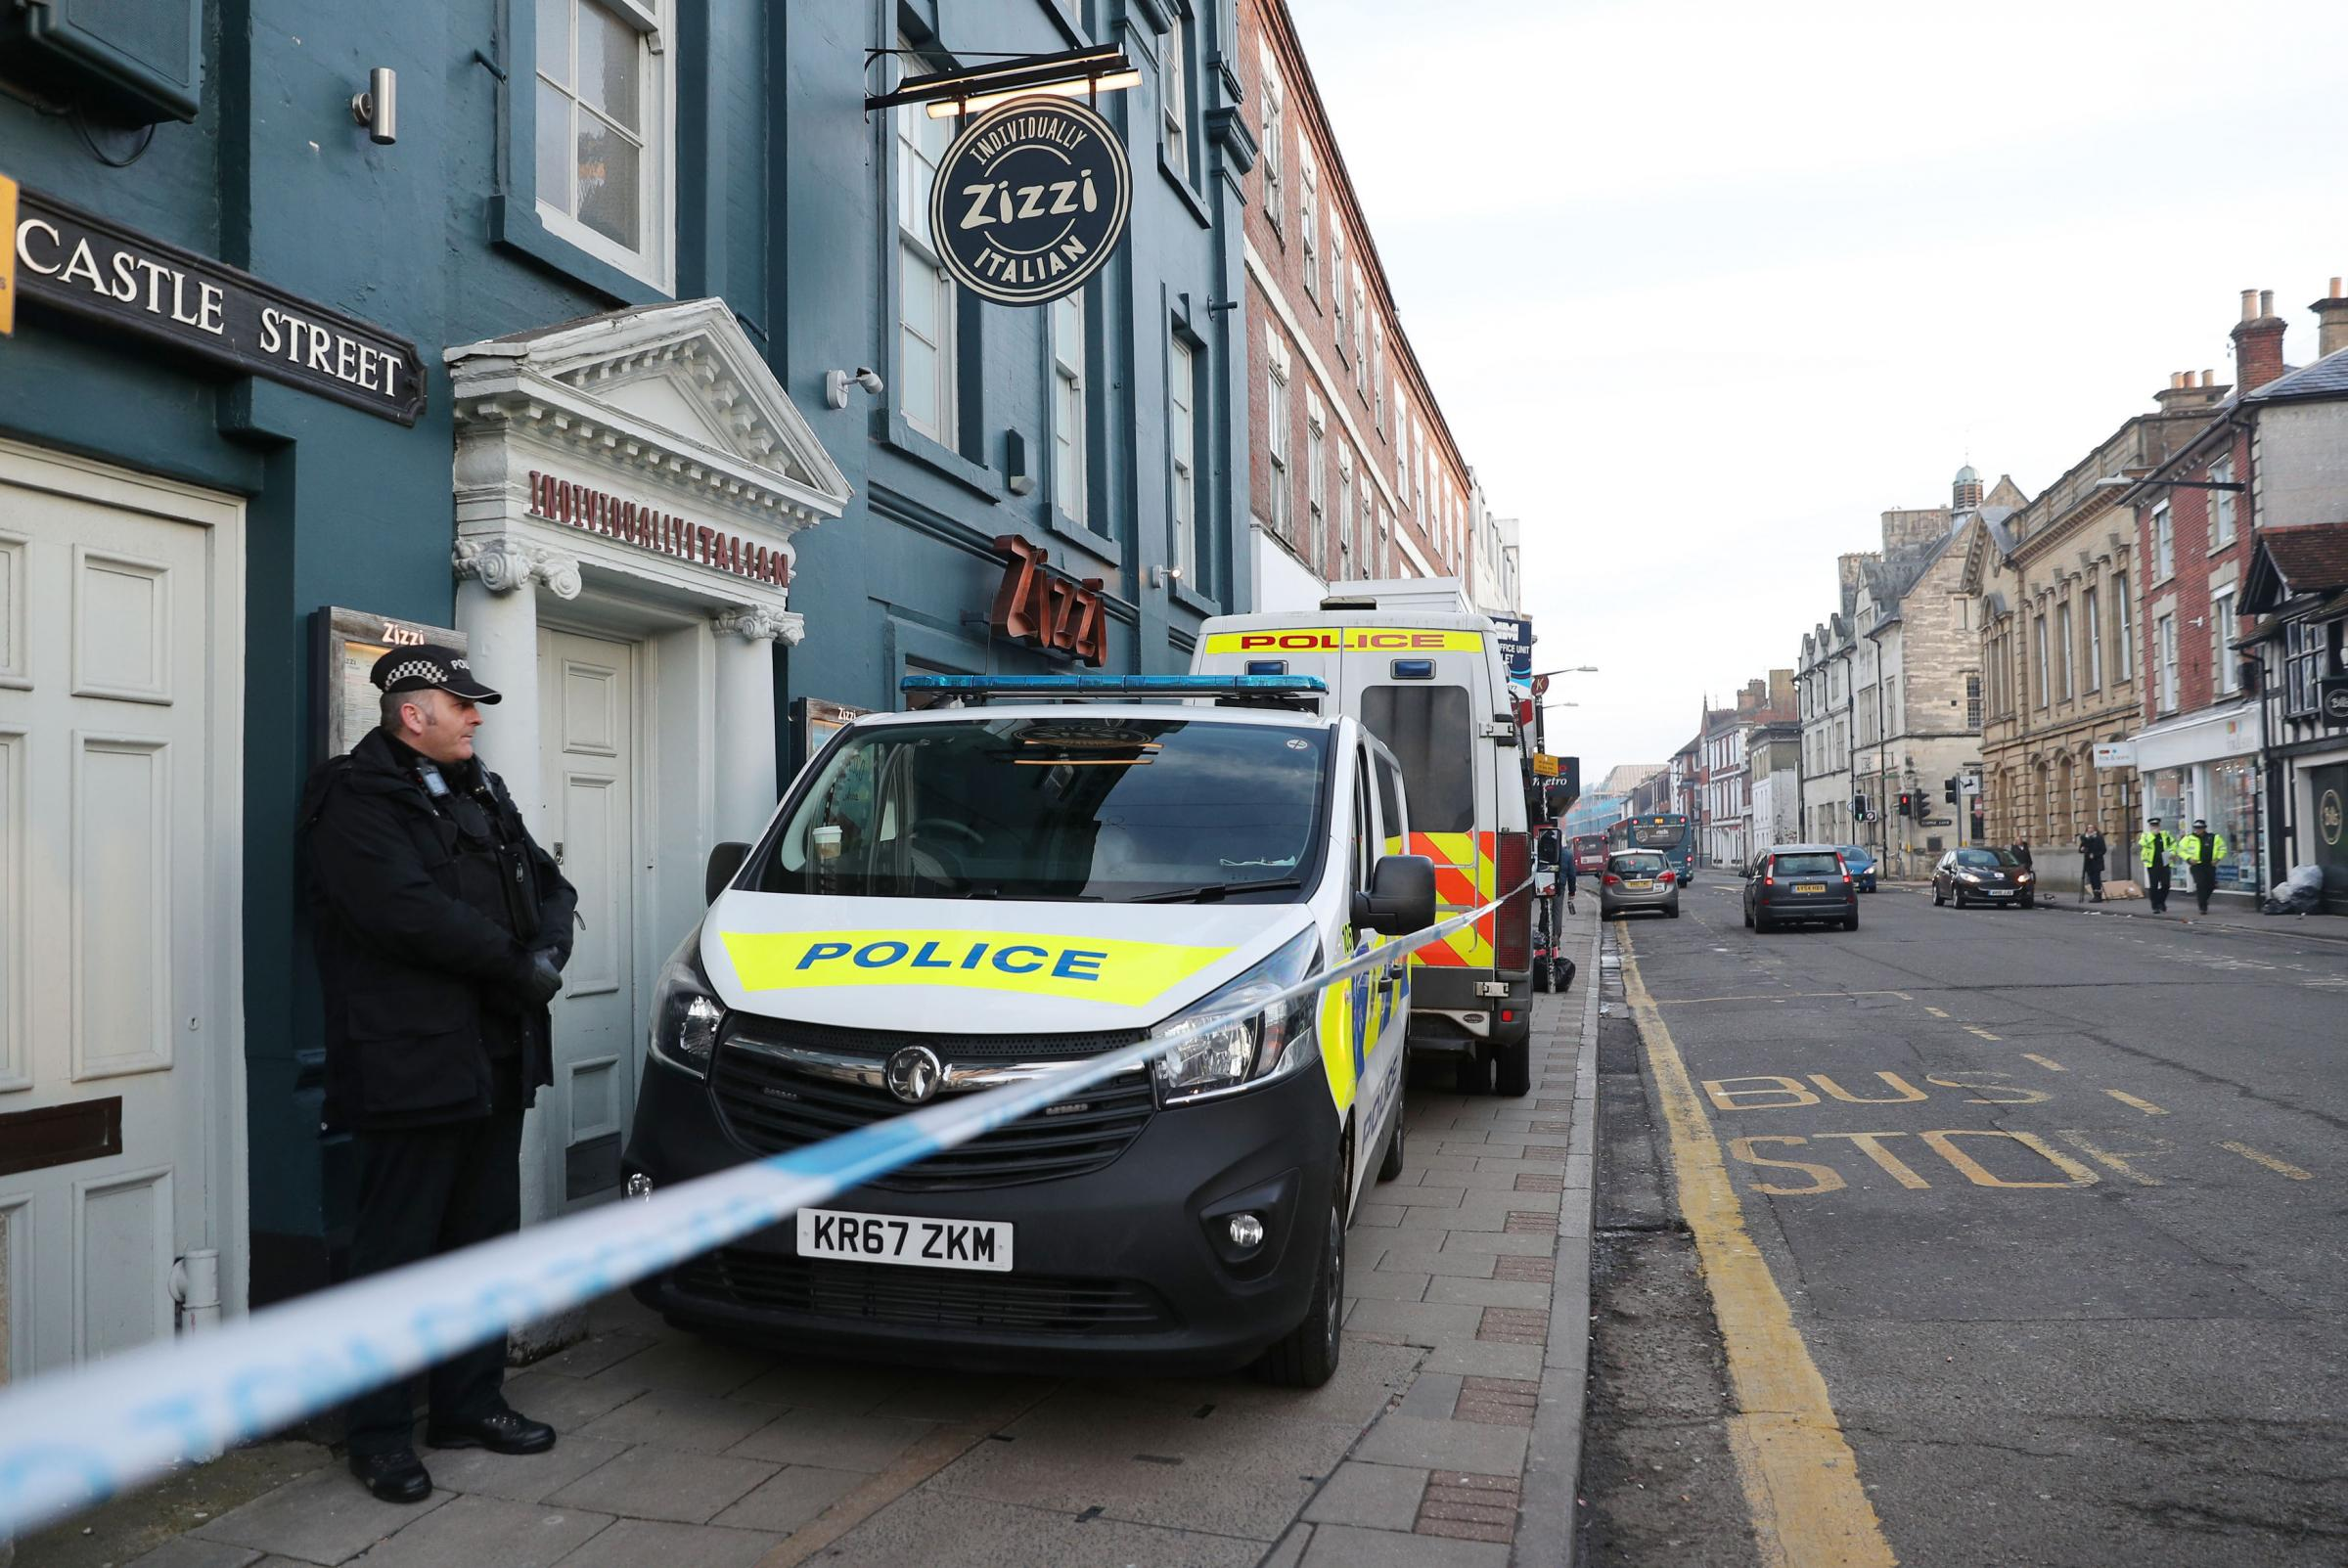 Police outside the Zizzi restaurant in Salisbury near to where former Russian double agent Sergei Skripal was found critically ill by exposure to an unknown substance. Photo by Andrew Matthews/PA Wire